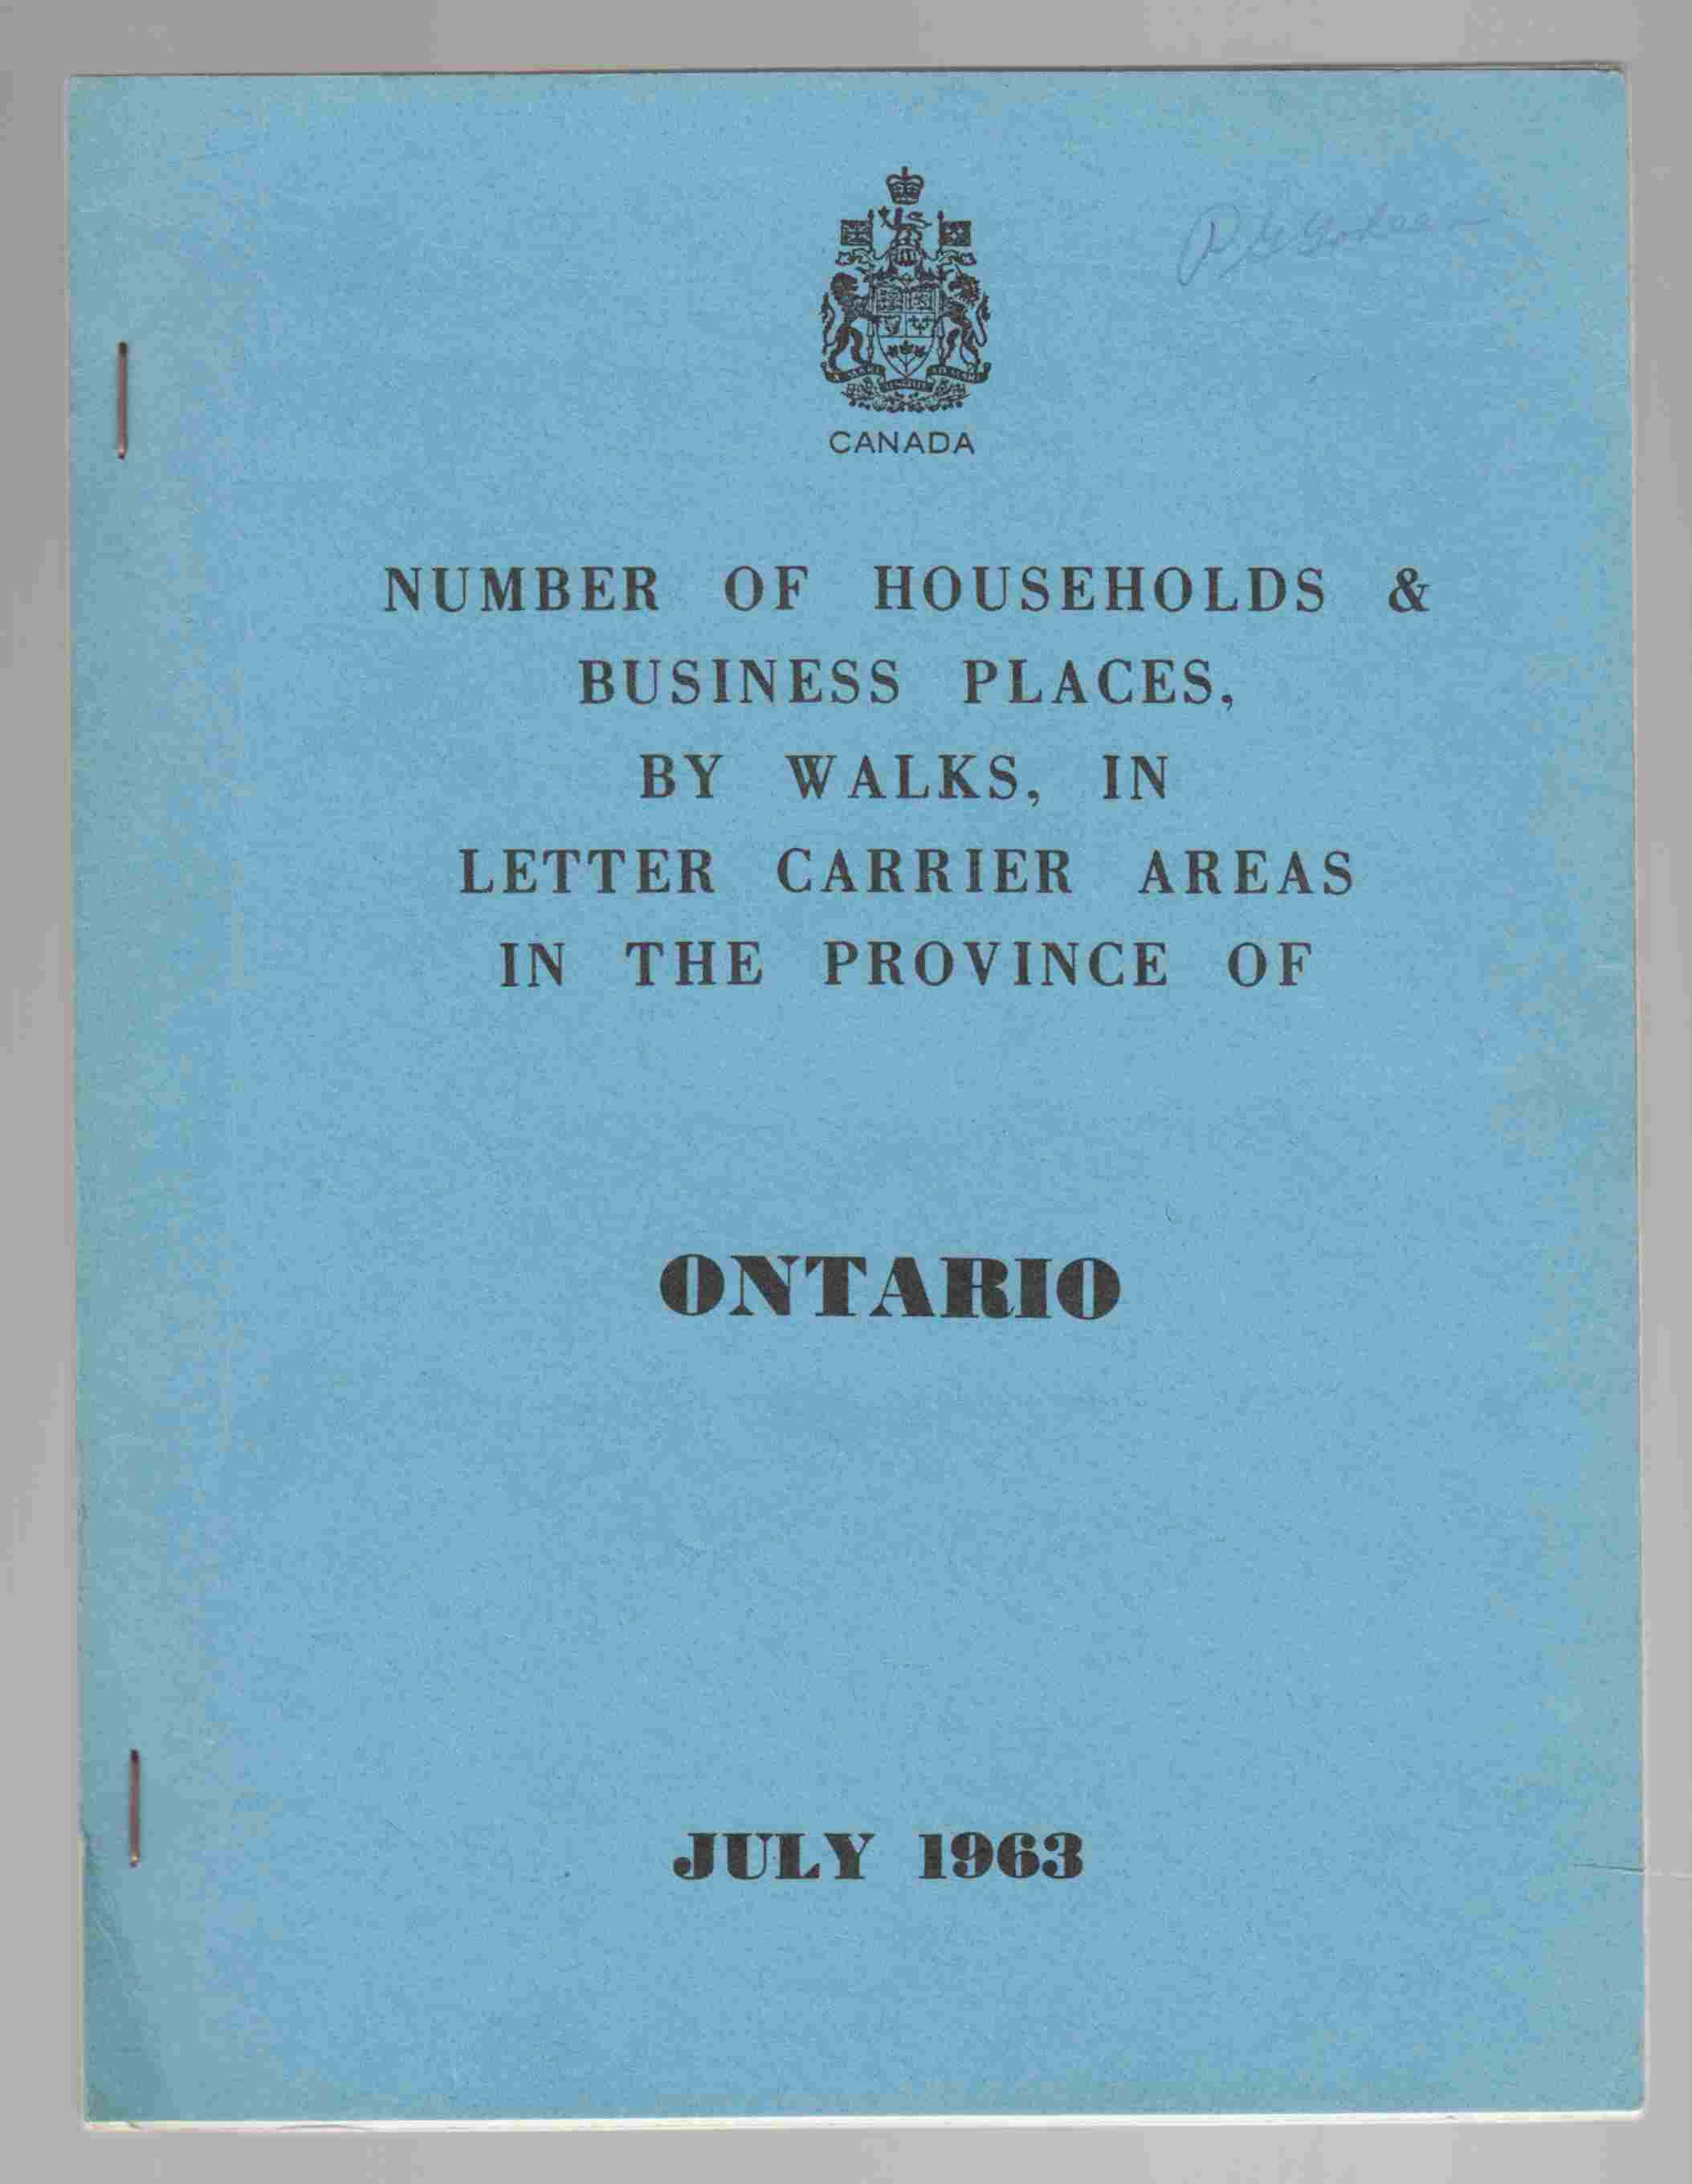 Image for Number of Households & Business Places, by Walks, in Letter Carrier Areas in the Province of Ontario